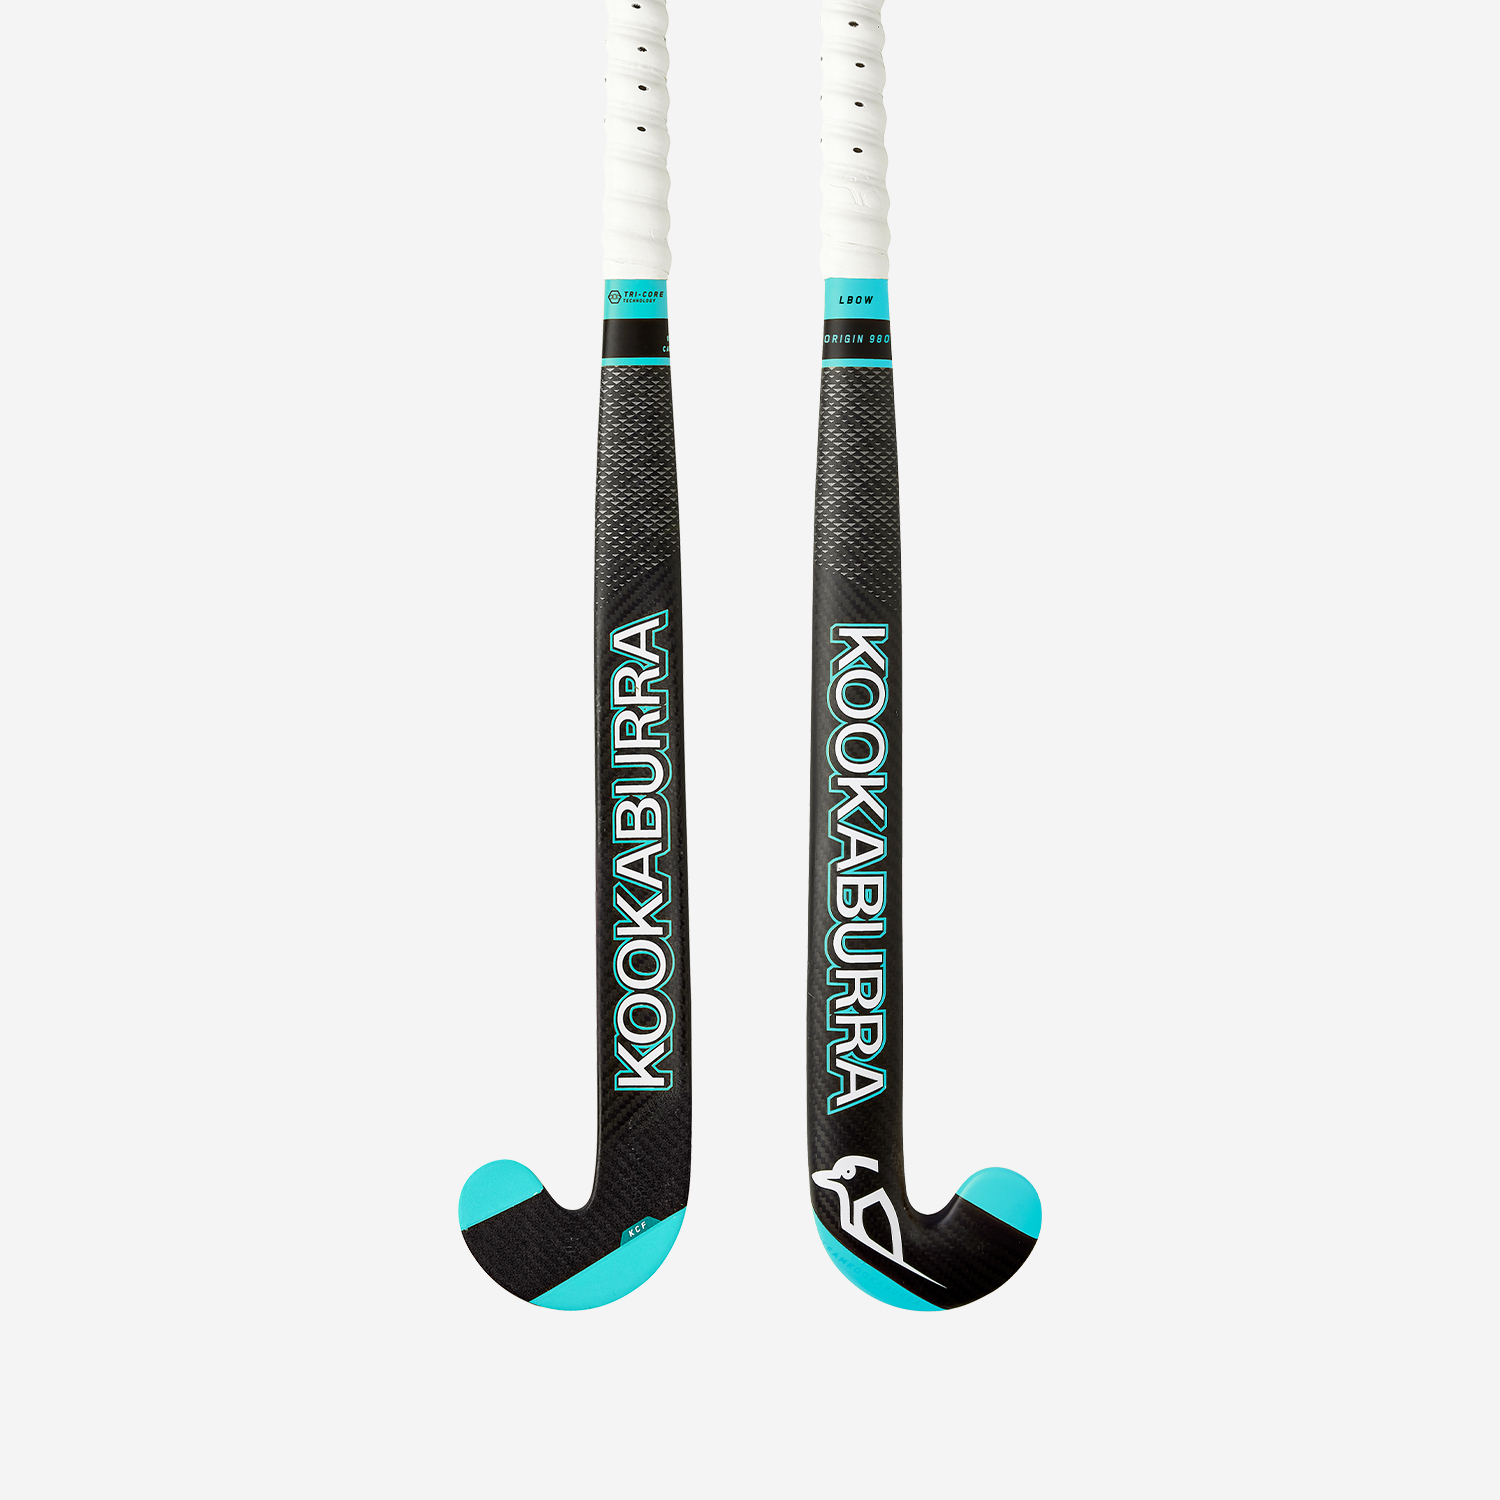 Origin 980 Hockey Stick Range M-Bow